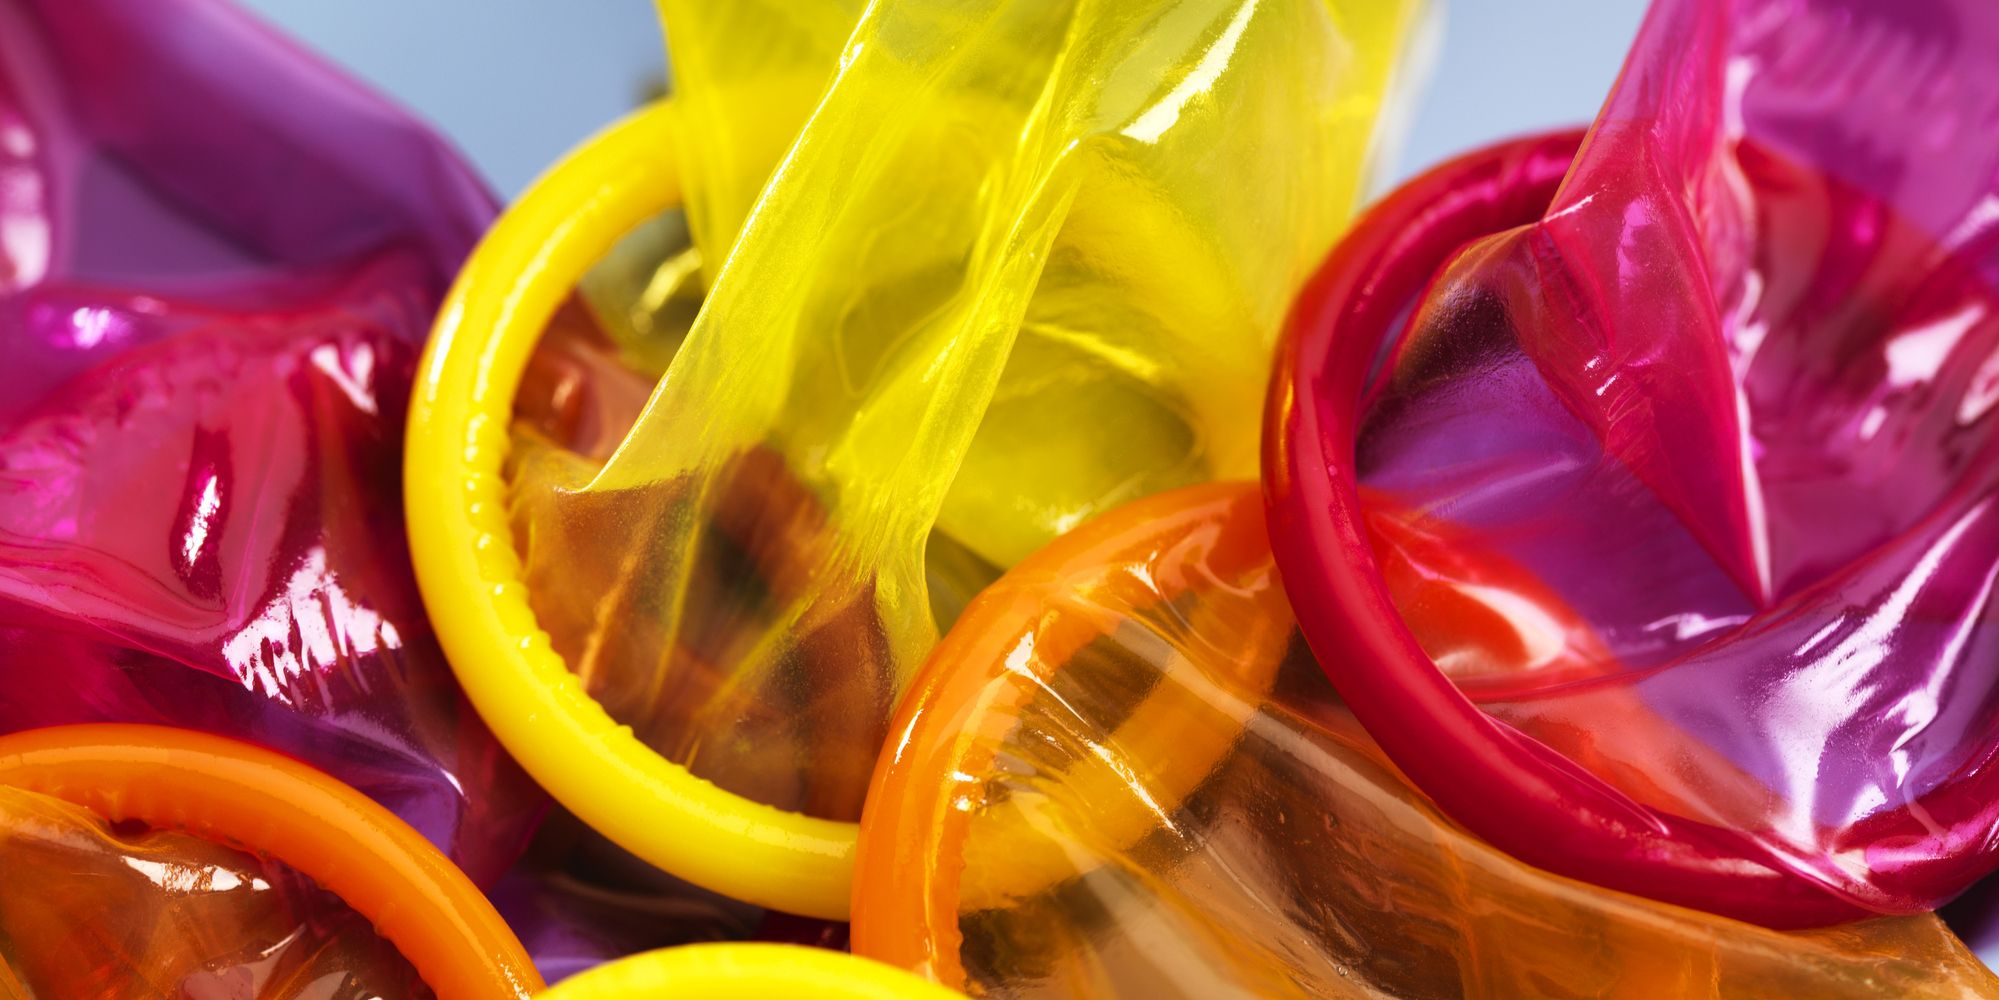 These Are the Best Condoms to Use for Oral Sex